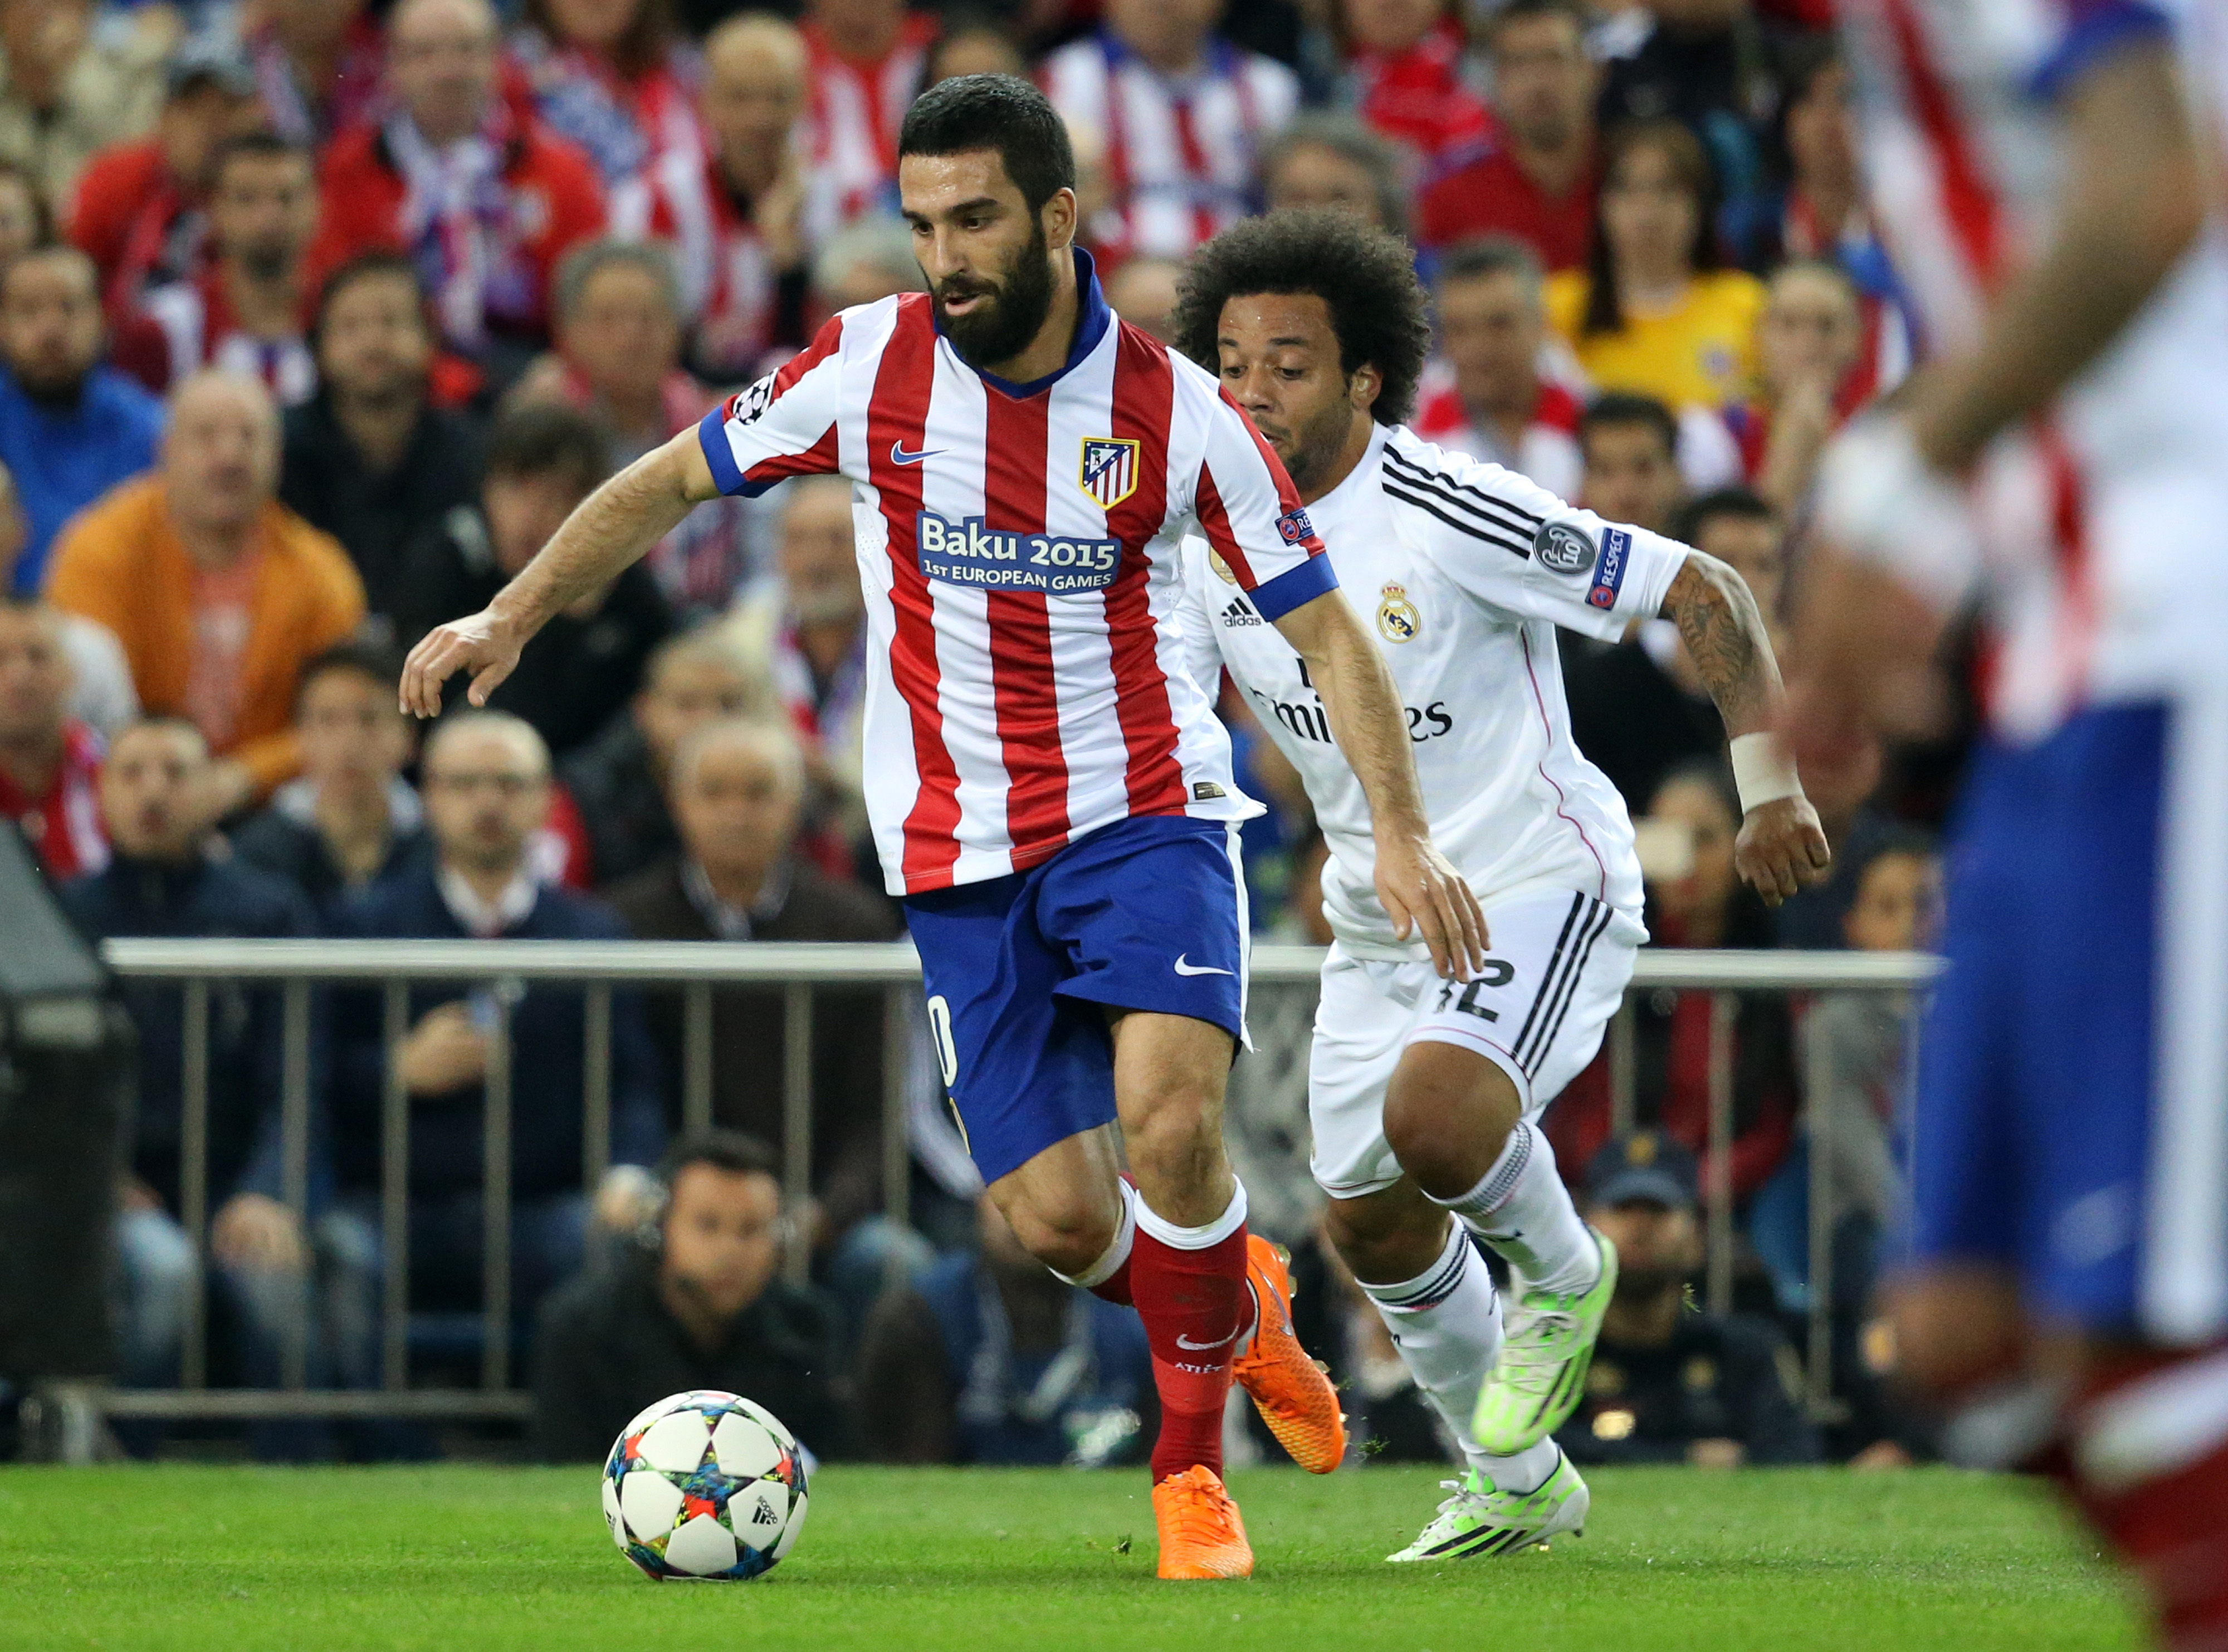 Chelsea pursuit of Arda Turan is exciting news